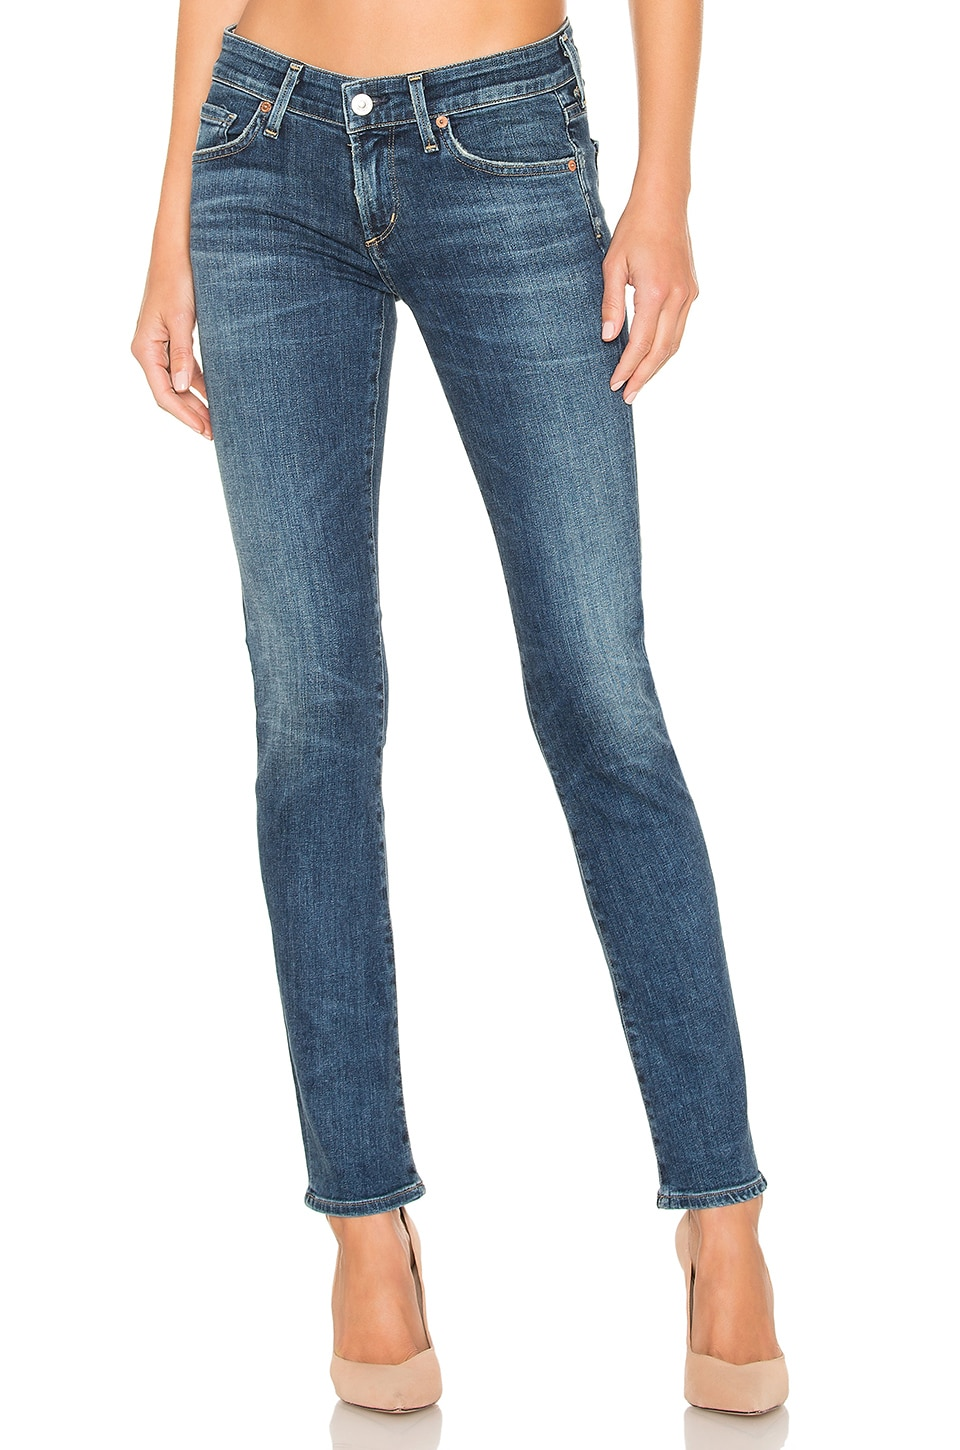 Racer Low Rise Skinny                   Citizens of Humanity                                                                                                                             CA$ 311.24 1